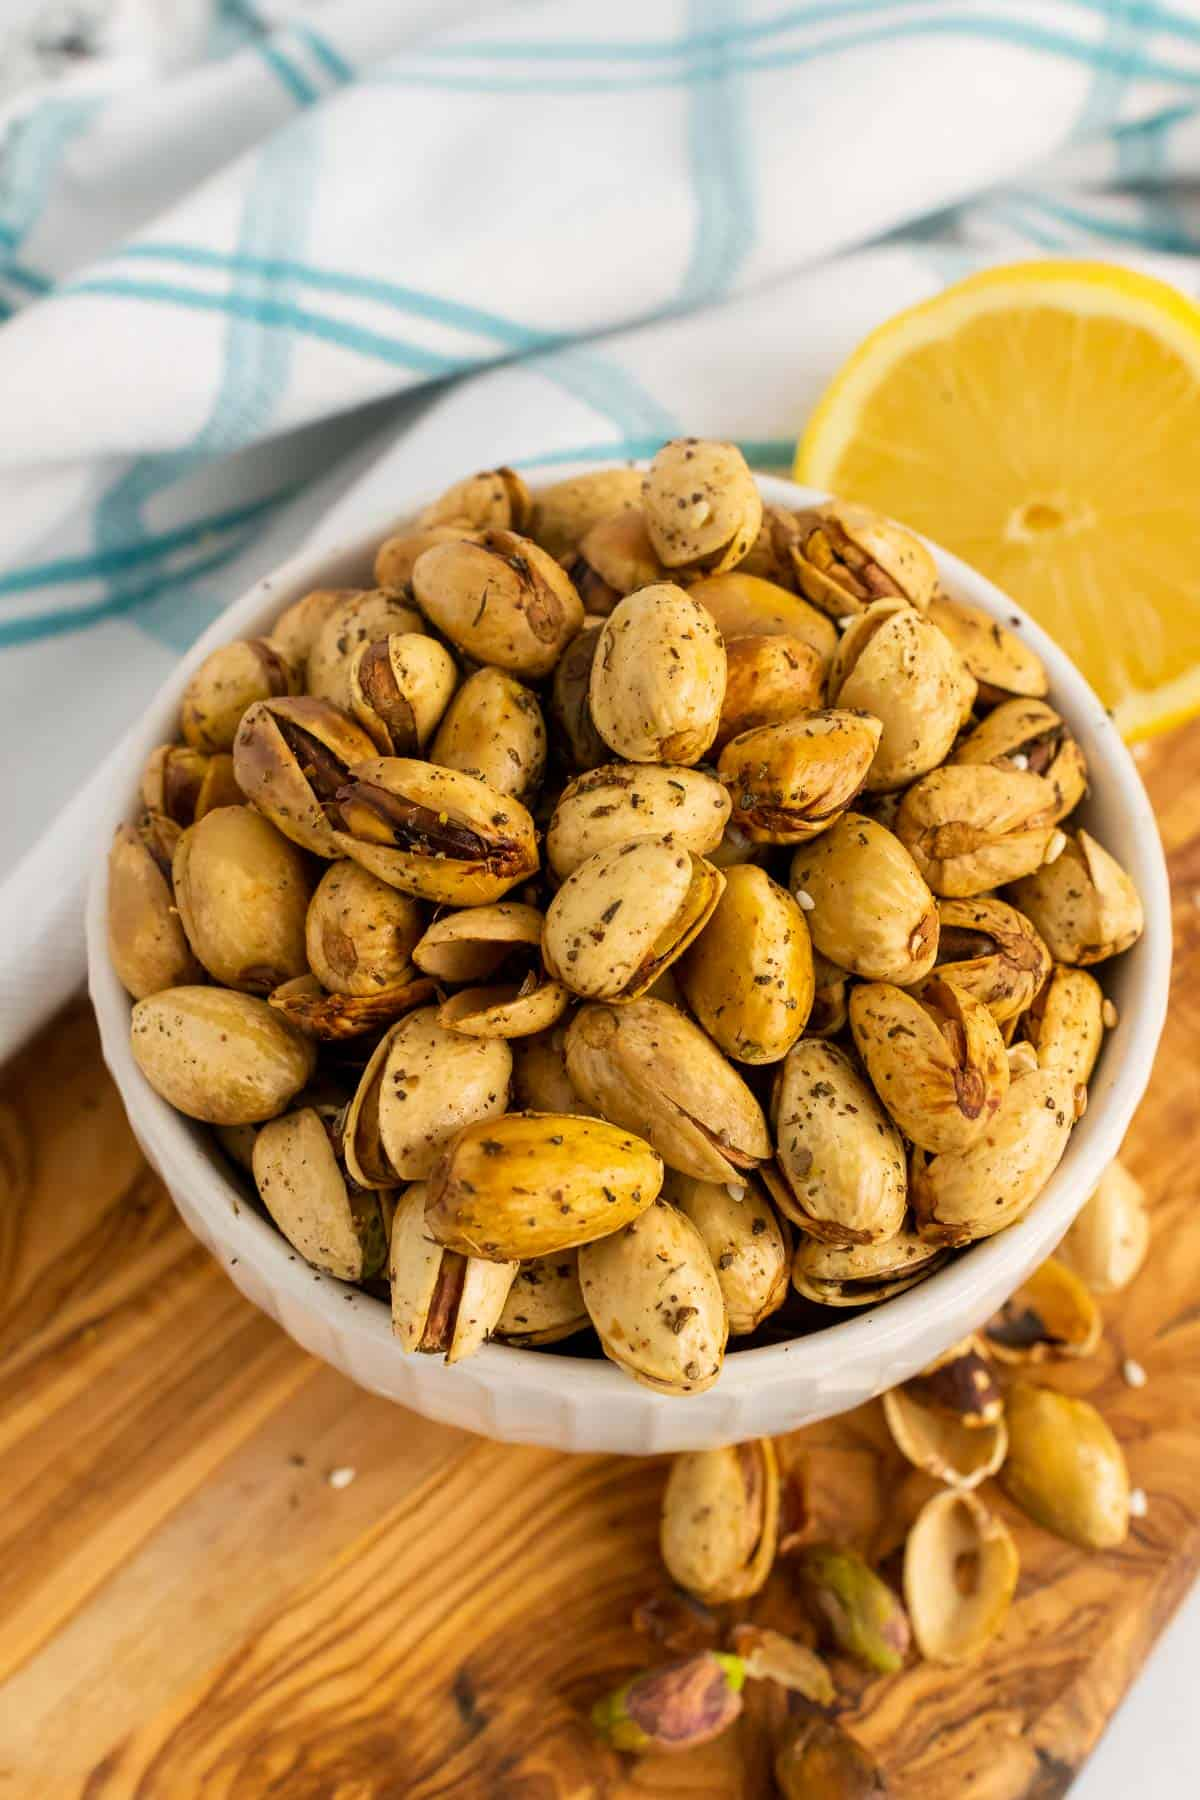 Bowl of pistachios on table with half a lemon